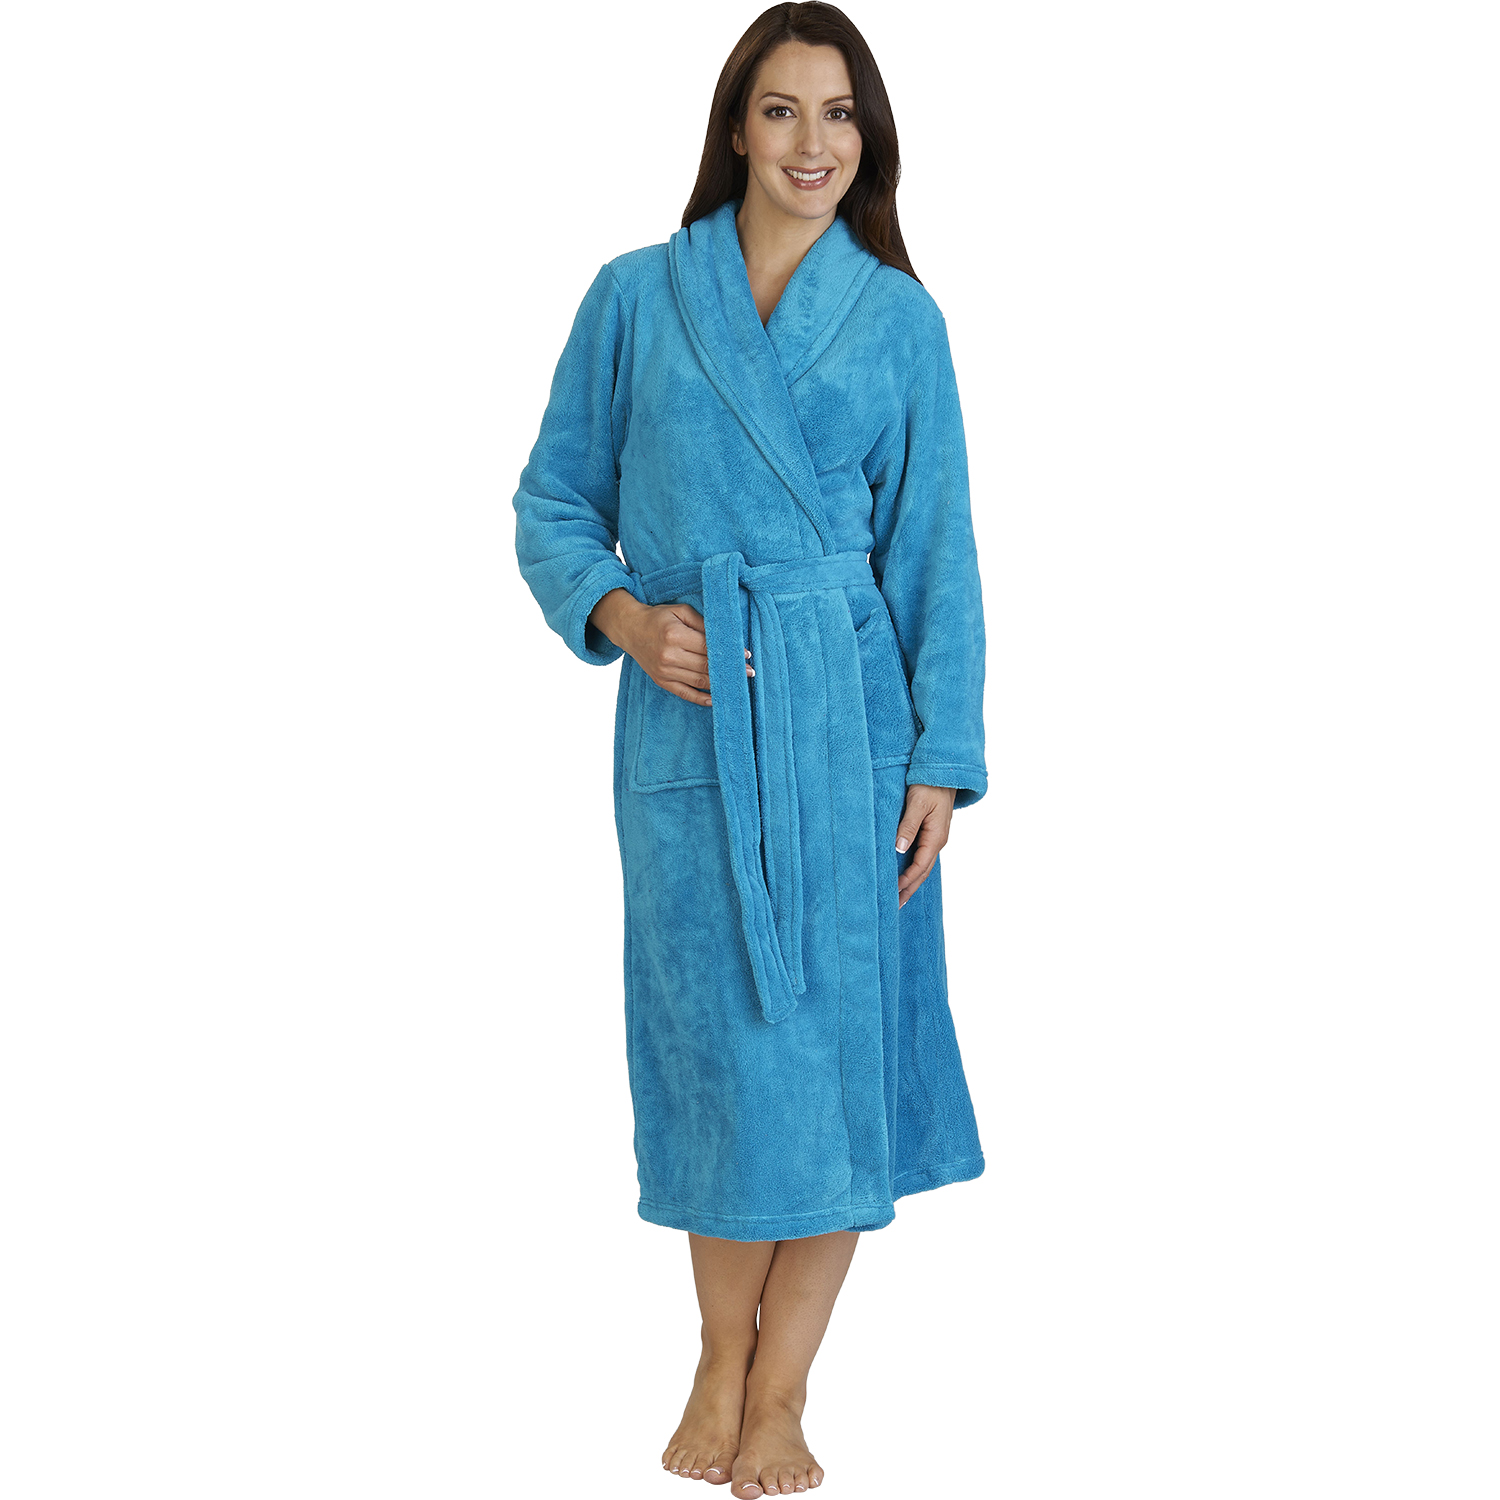 Bathrobe: Womens Luxury Gift Wrapped Bathrobe Ladies Soft